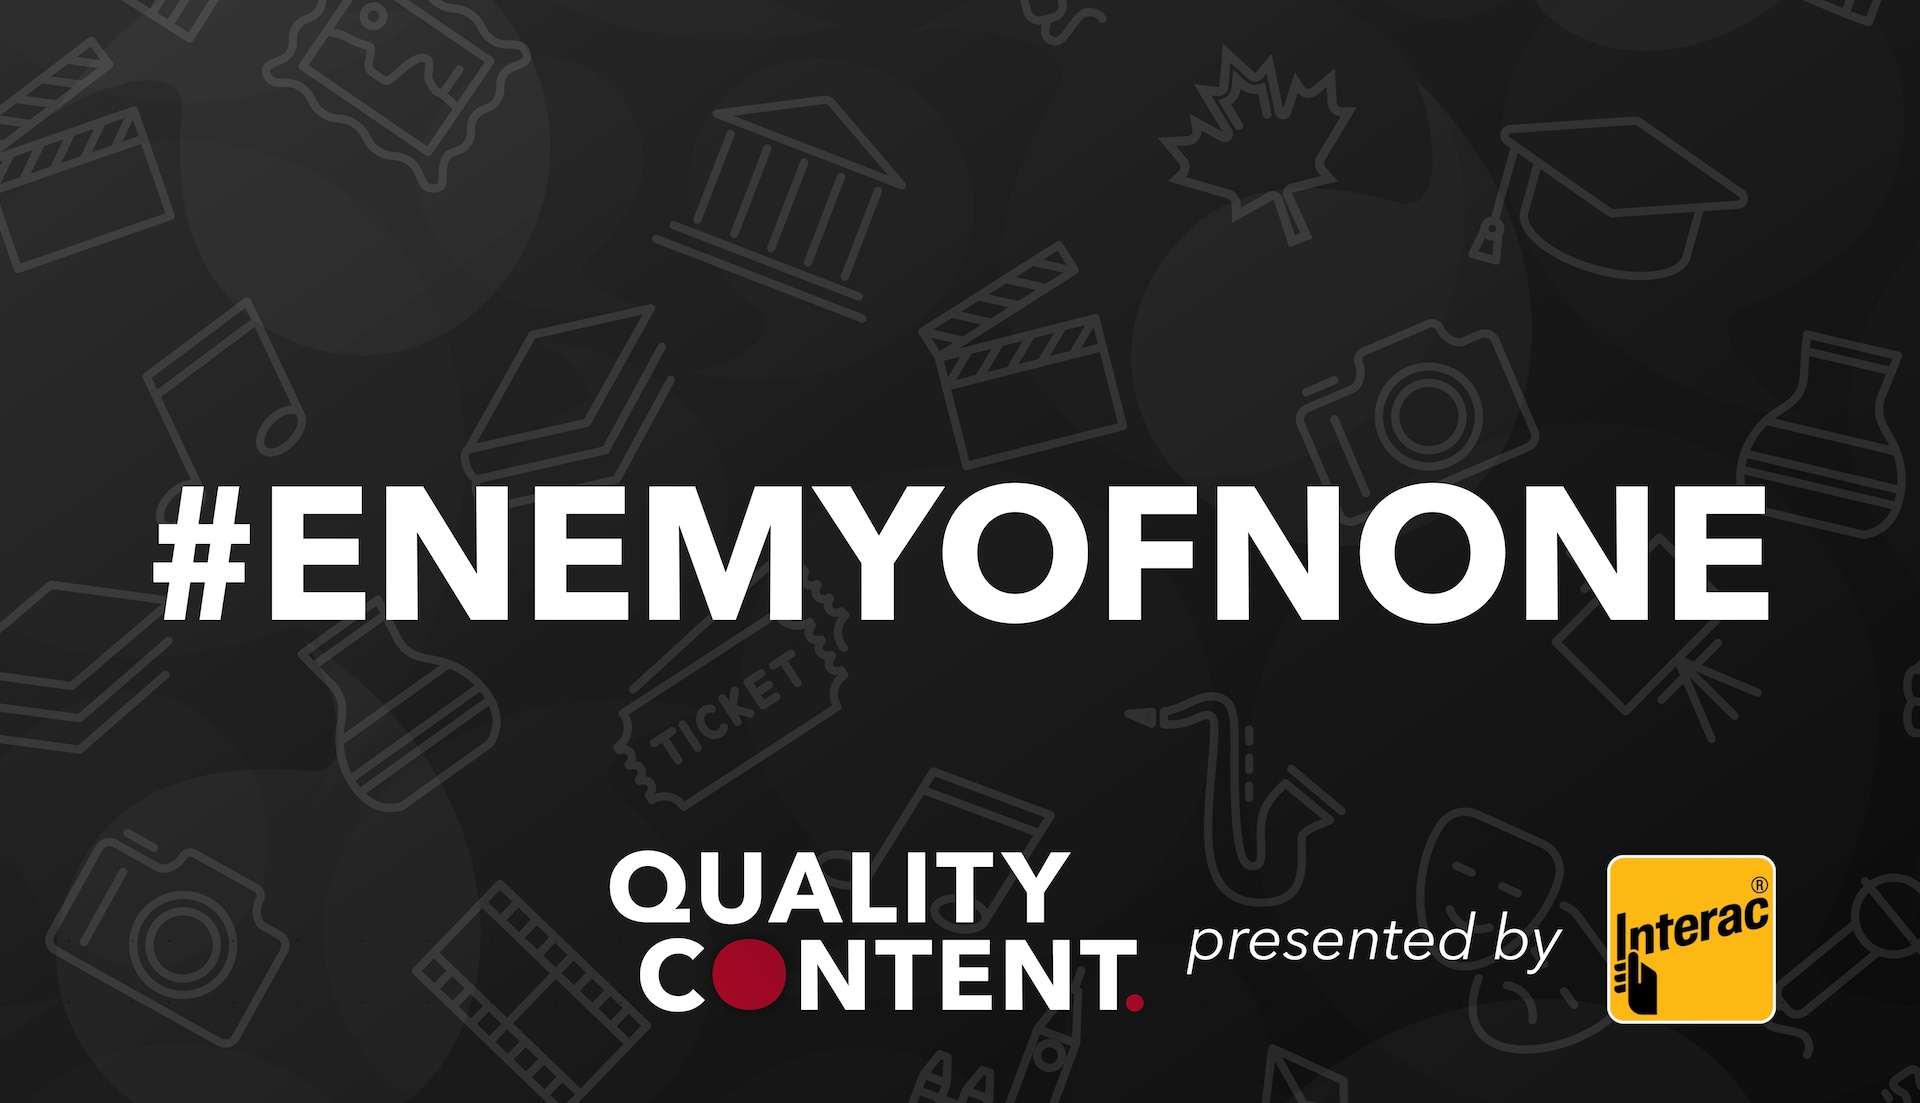 QC Enemy of None graphic w logos